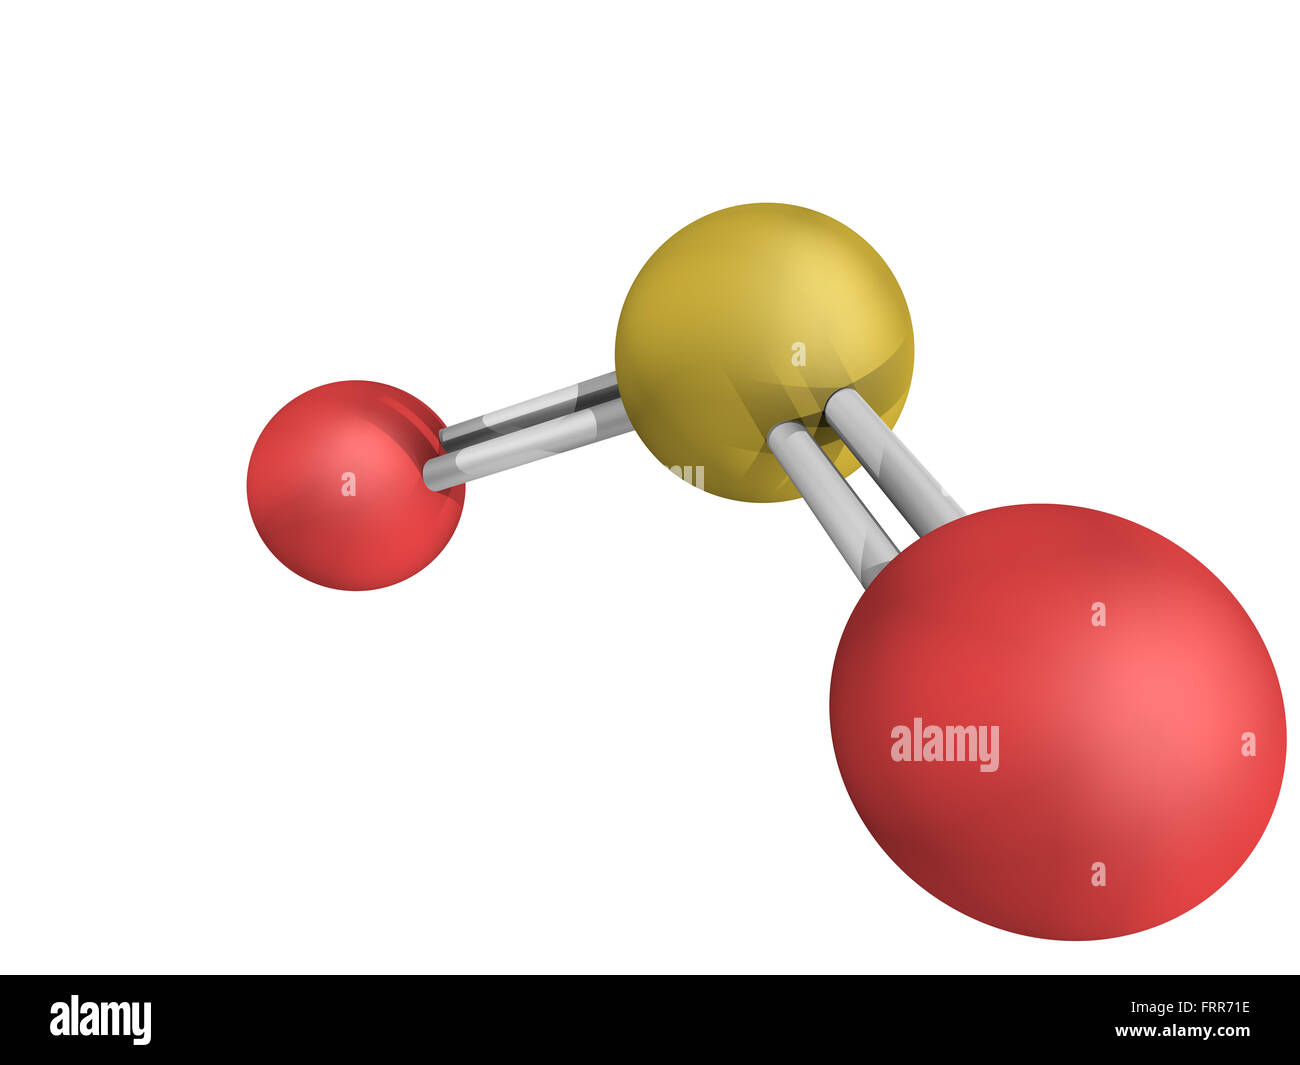 Chemical structure of sulfur dioxide (sulphur dioxide, SO2) gas, molecular model. SO2 (E220) is also used in winemaking - Stock Image